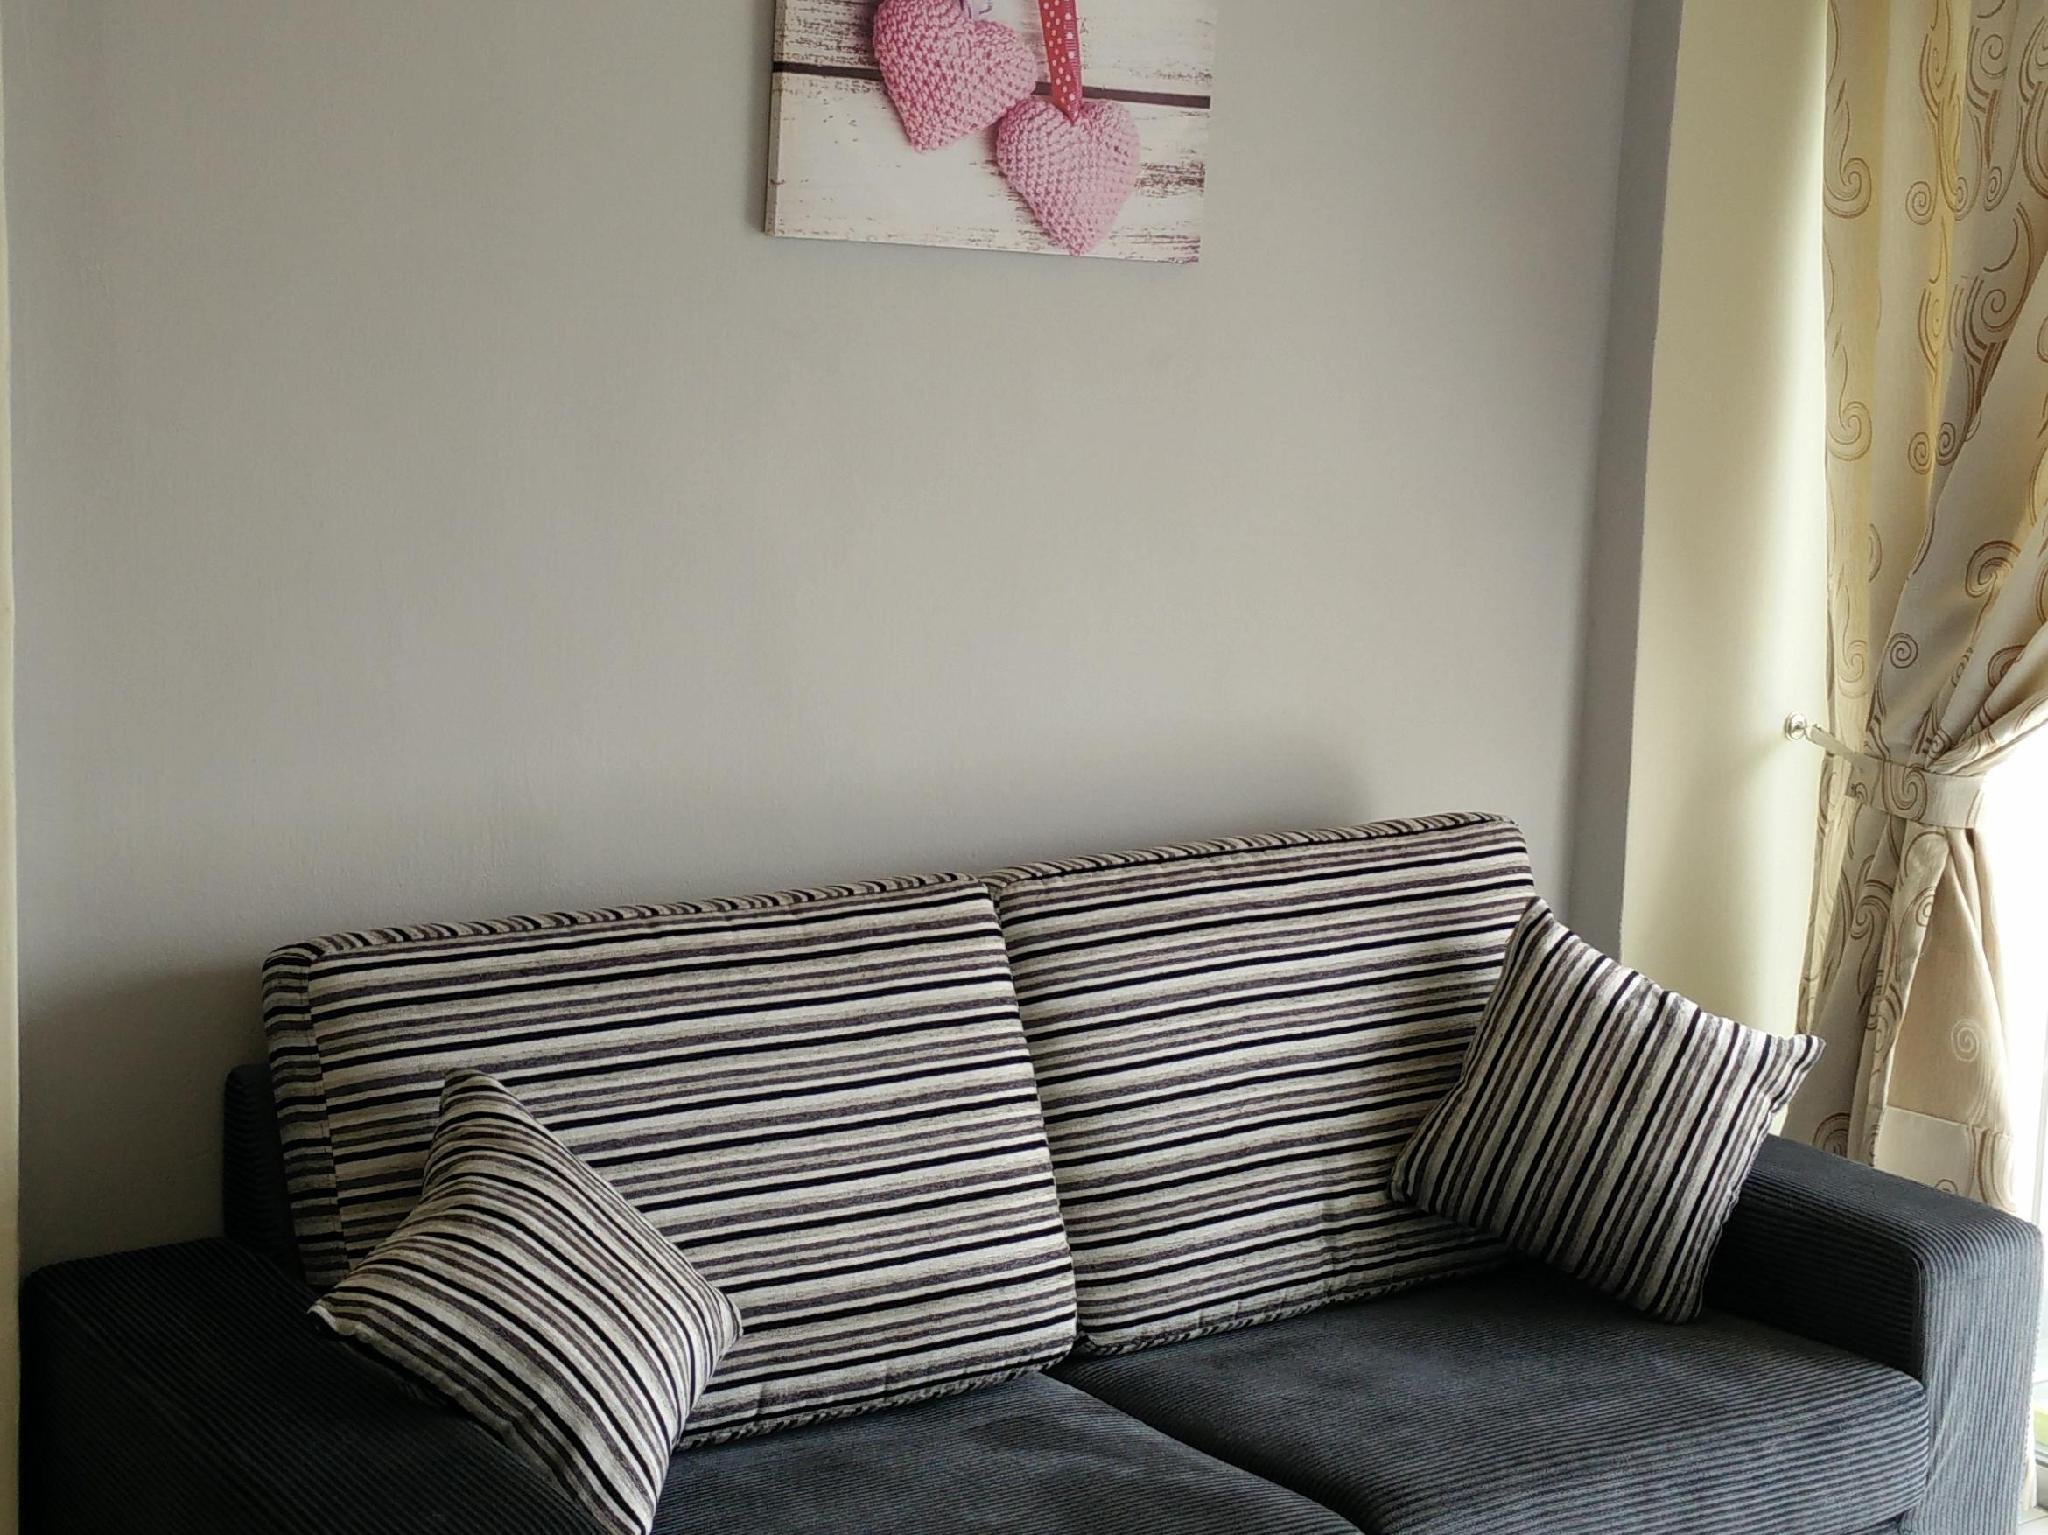 H&A Guest House with Riverview, Kota Melaka